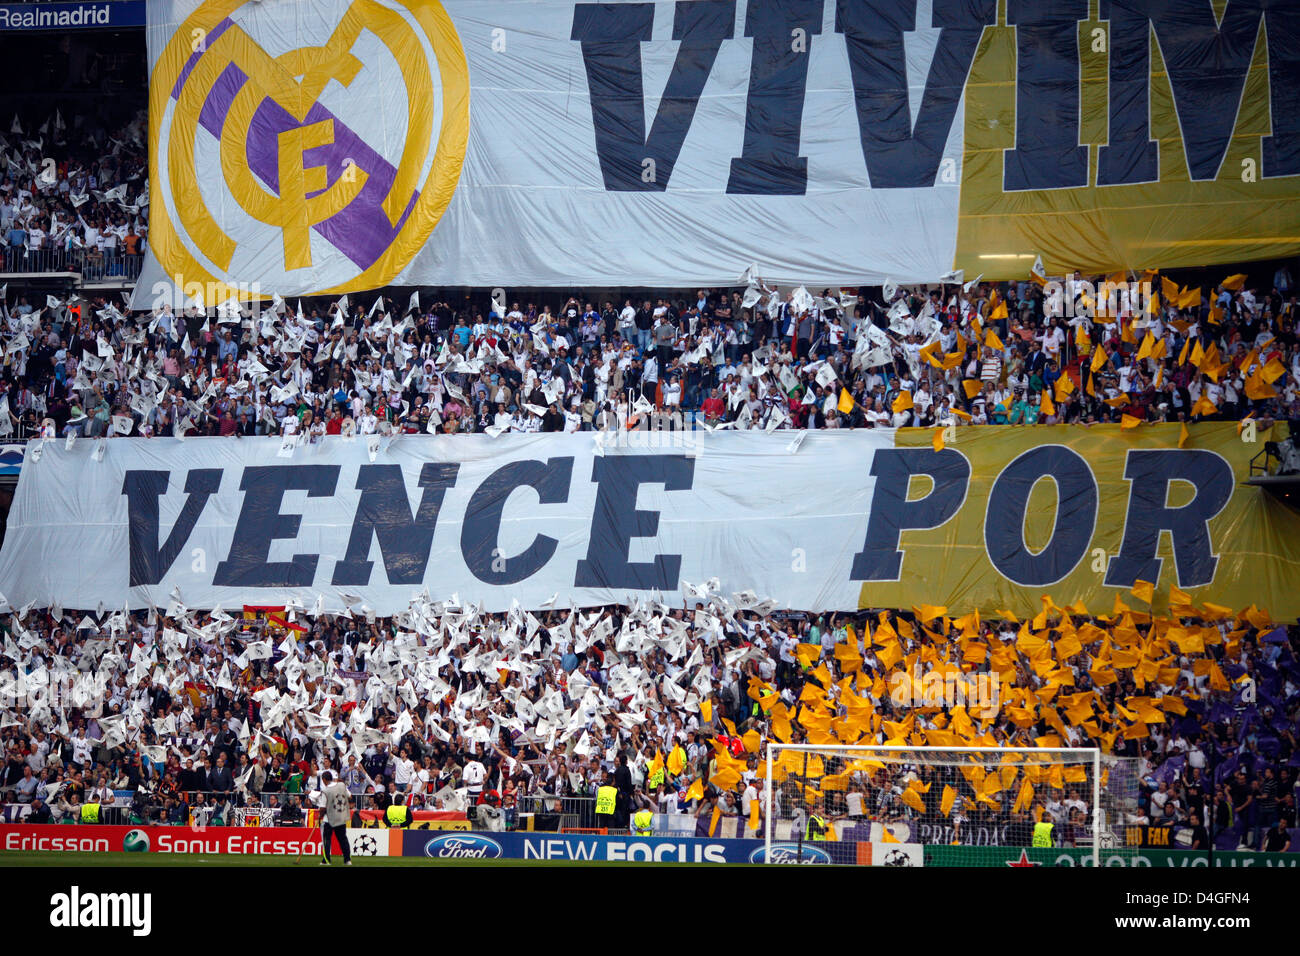 Madrid, Spain, fans of Real Madrid CF in the UEFA Champions League semi-final - Stock Image